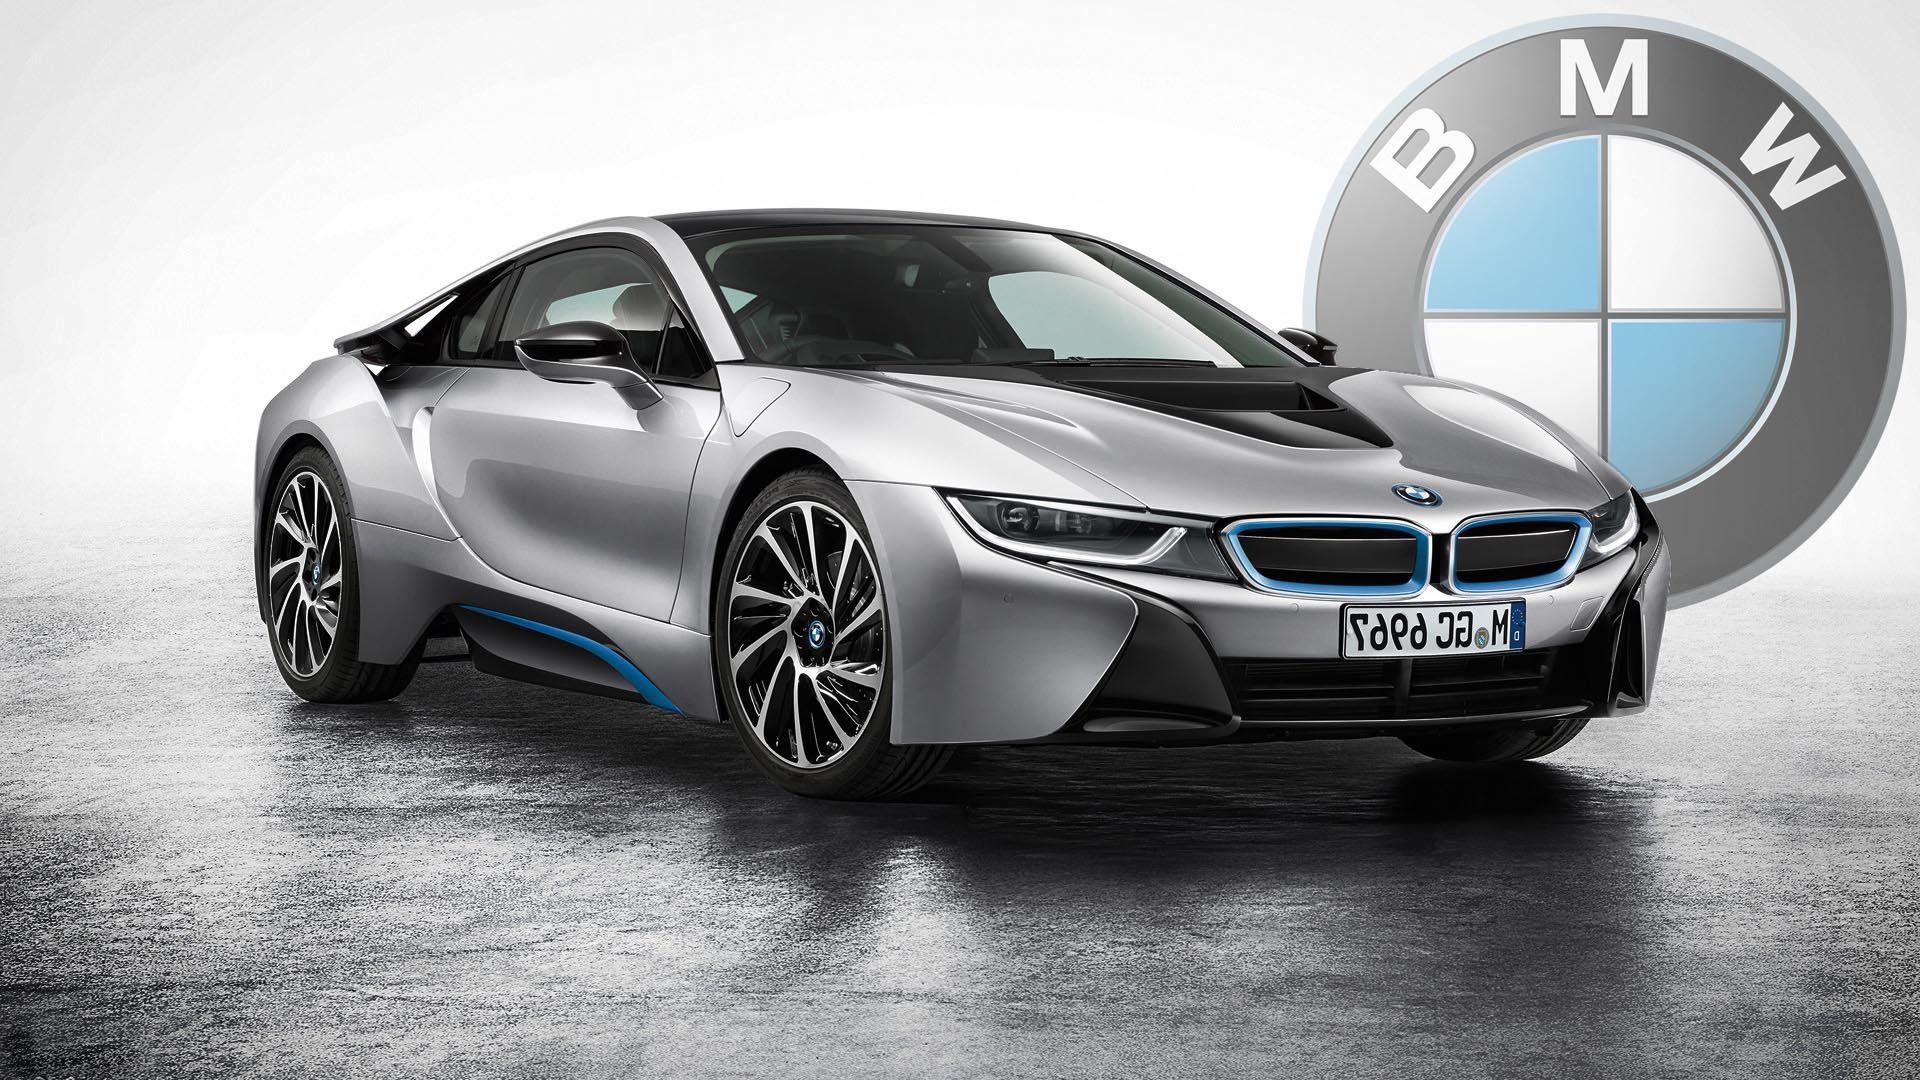 2015 Bmw I8 Coupe Super Car Wallpaper Car Hd Wallpaper Pinterest